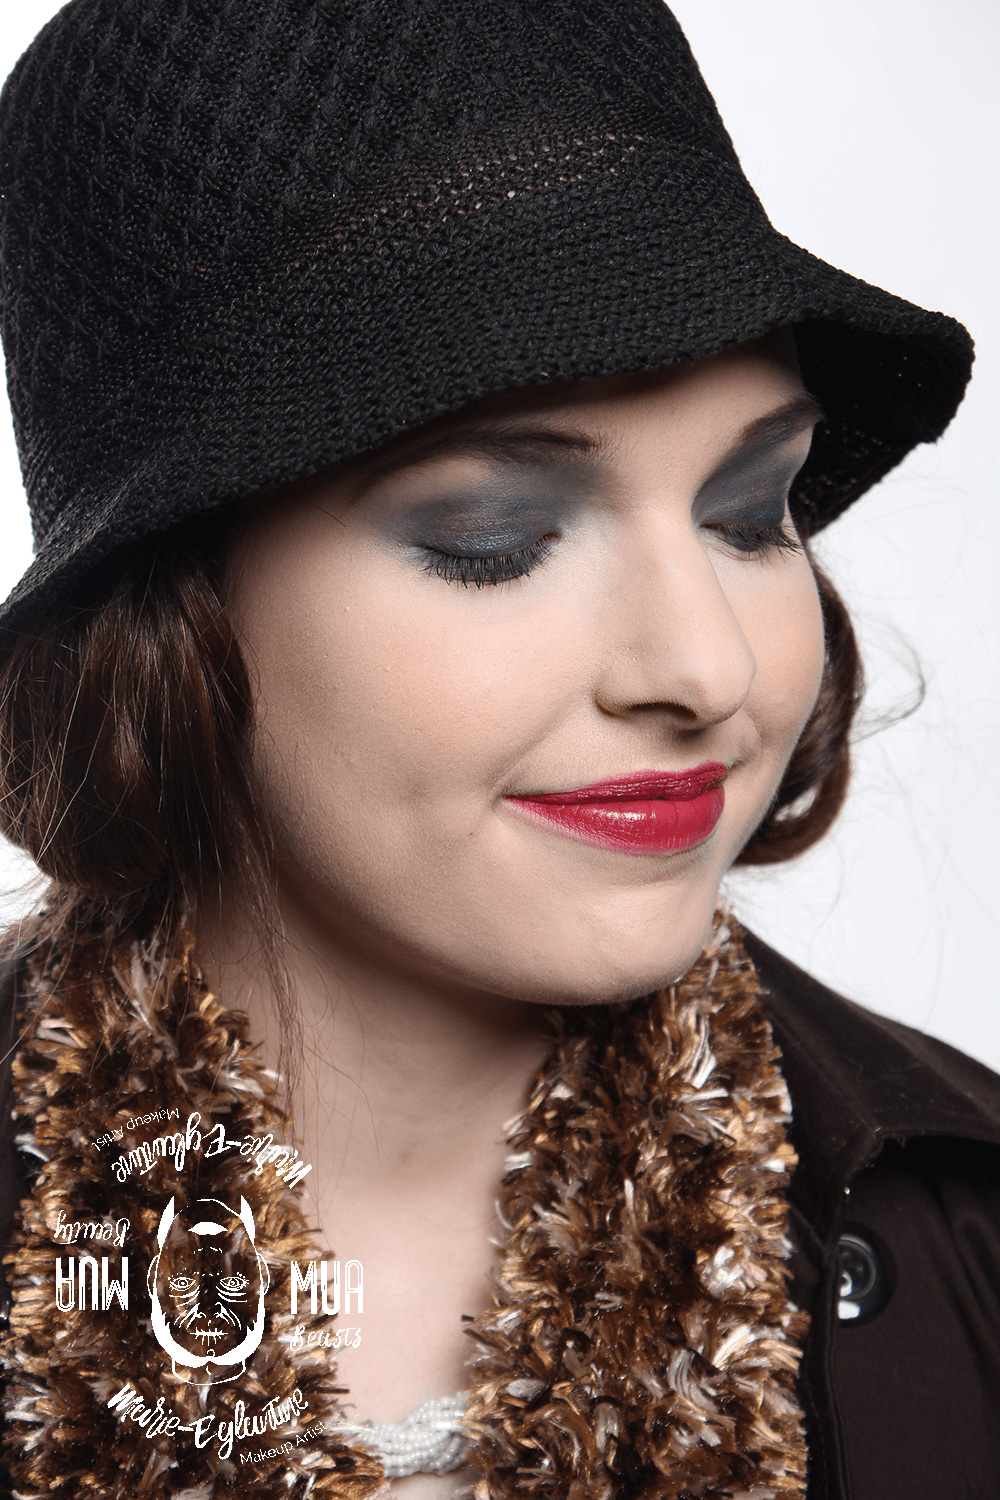 Maquillage style années 1920